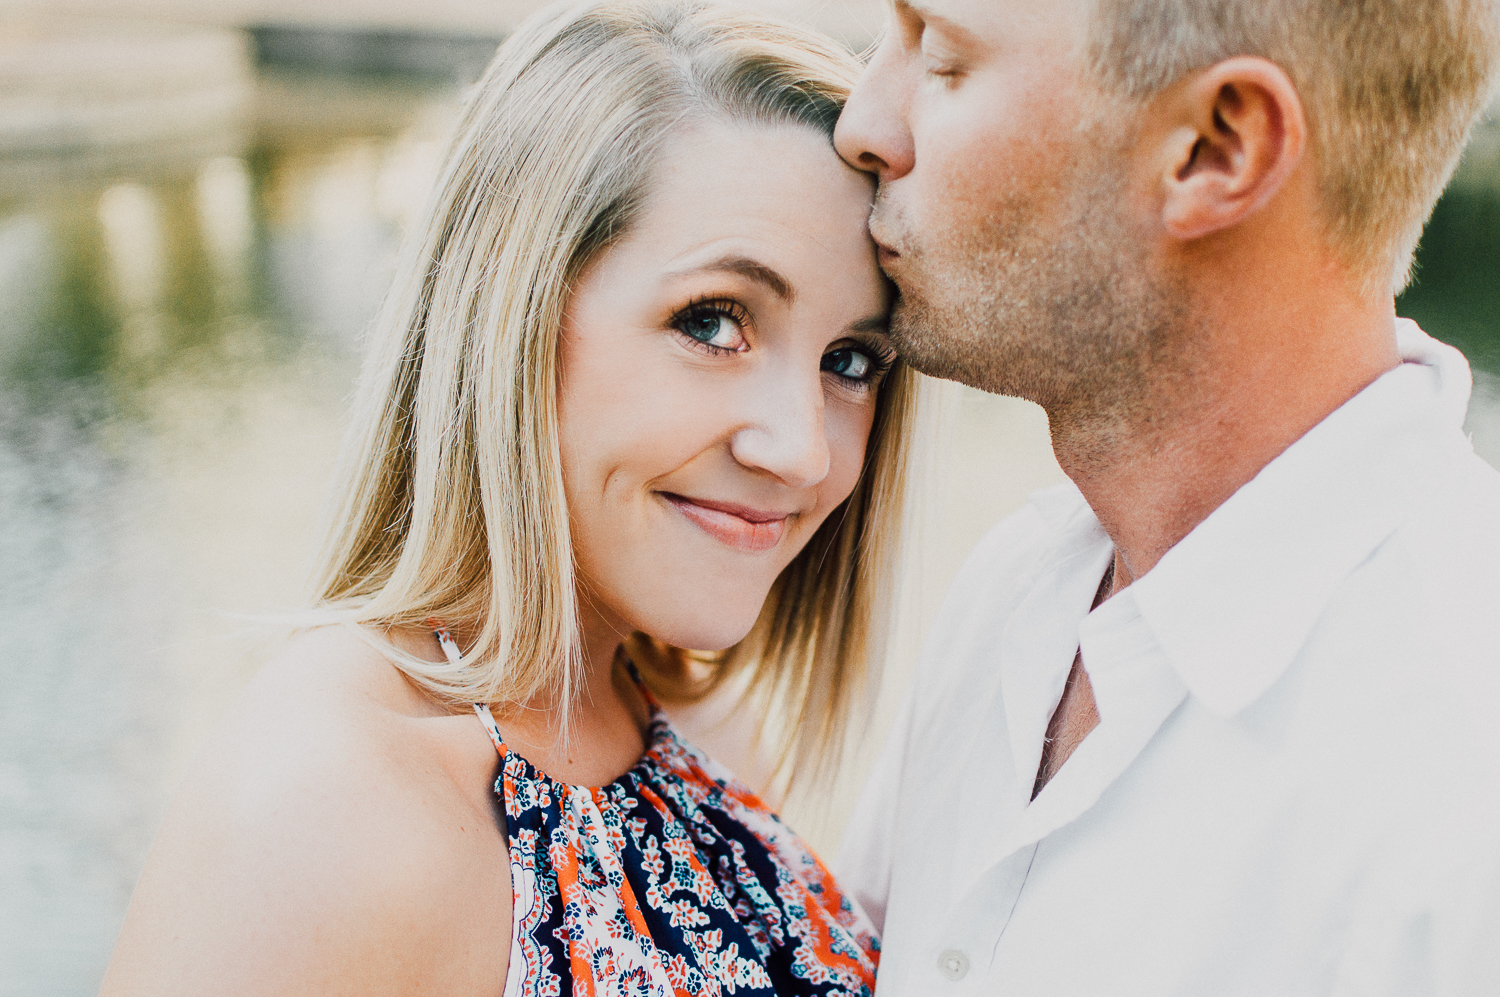 Engagement Shoots are beautiful. 2 happy people in love. Ummmm yes.